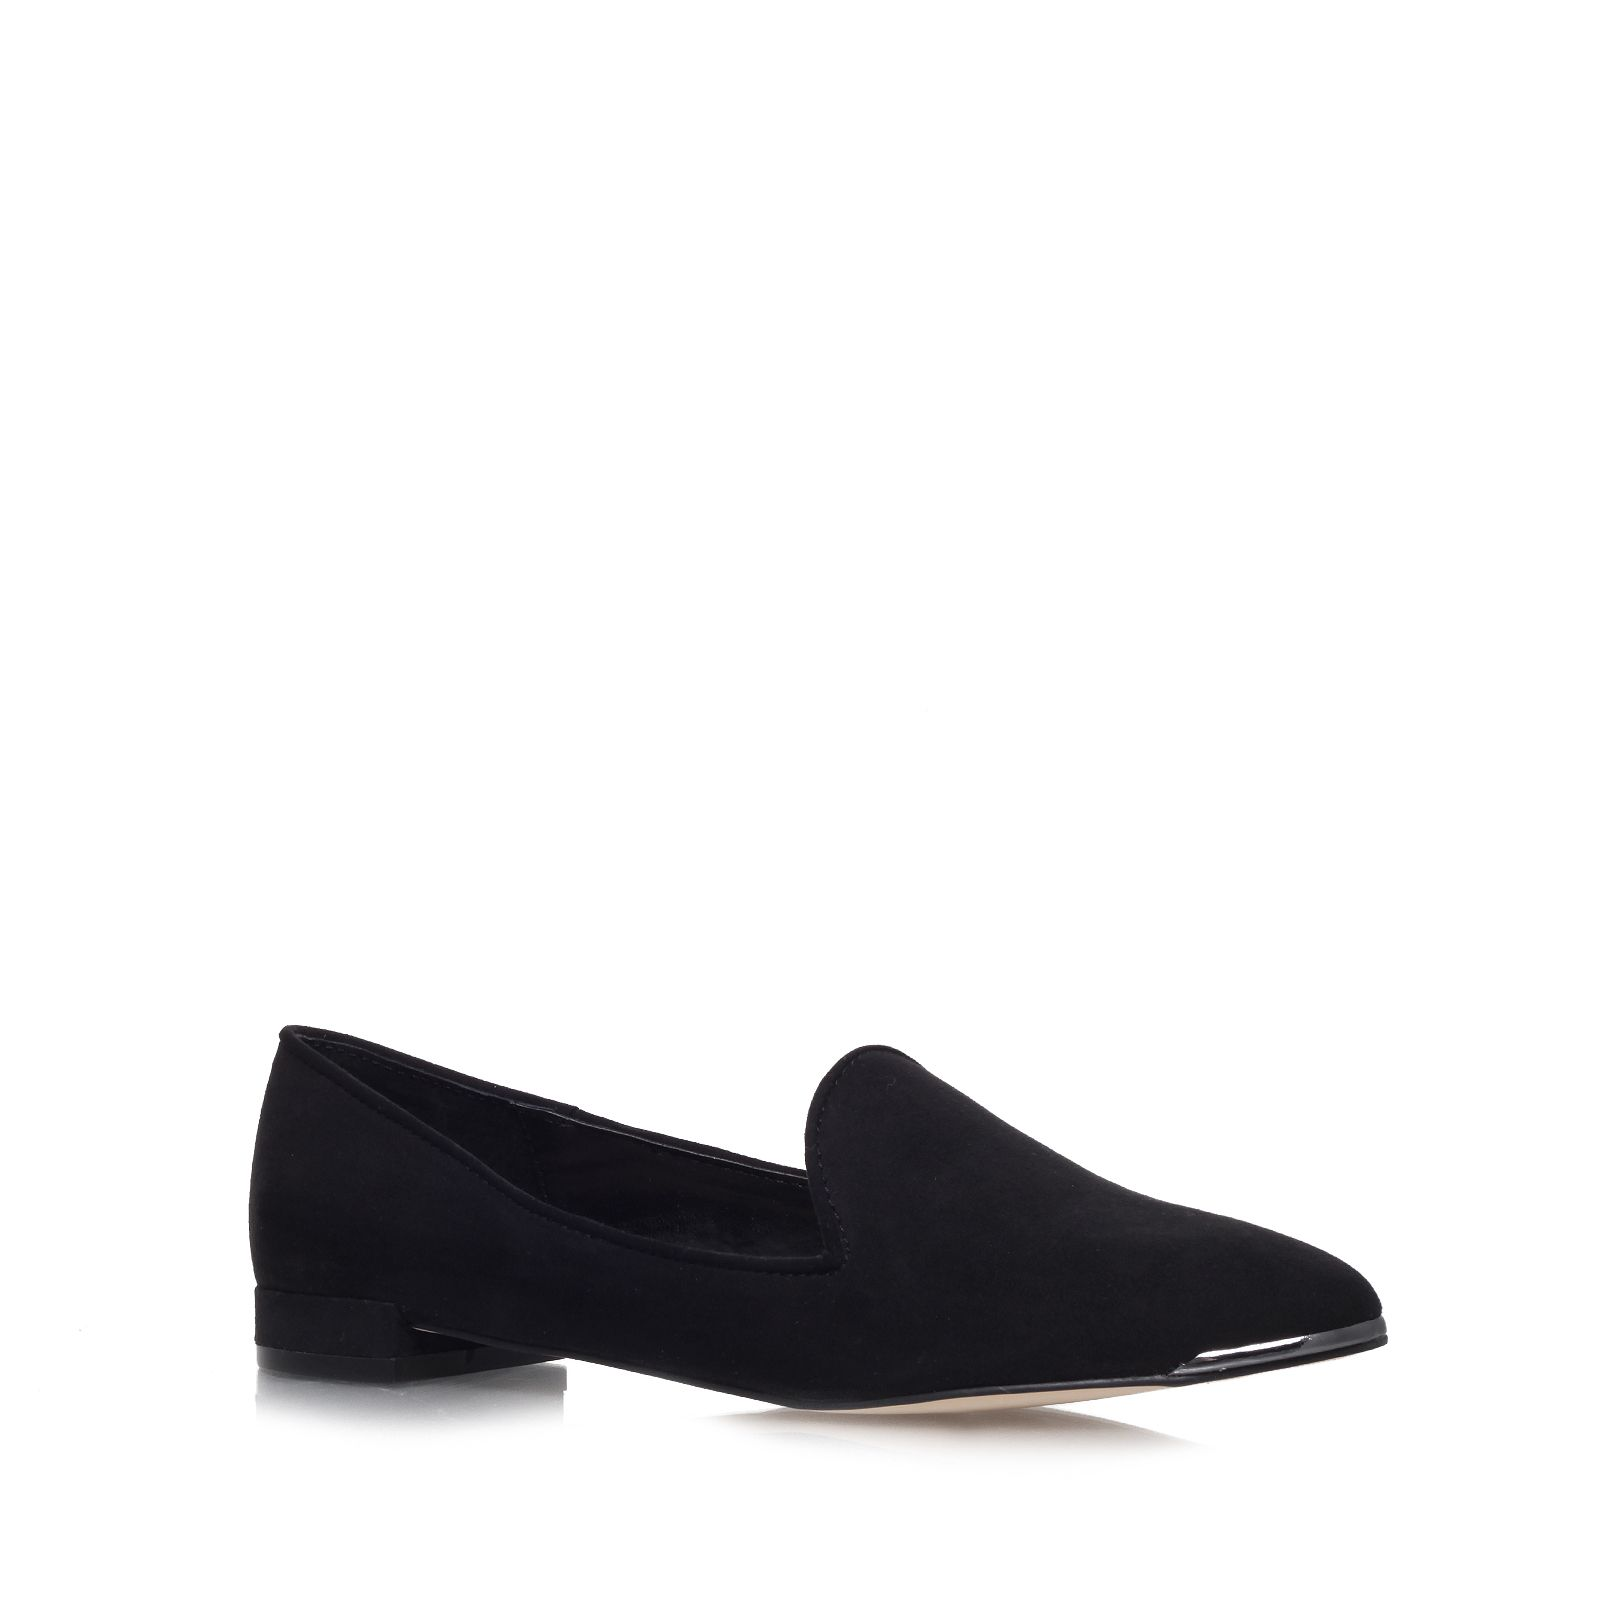 Maisy flat slipper shoes